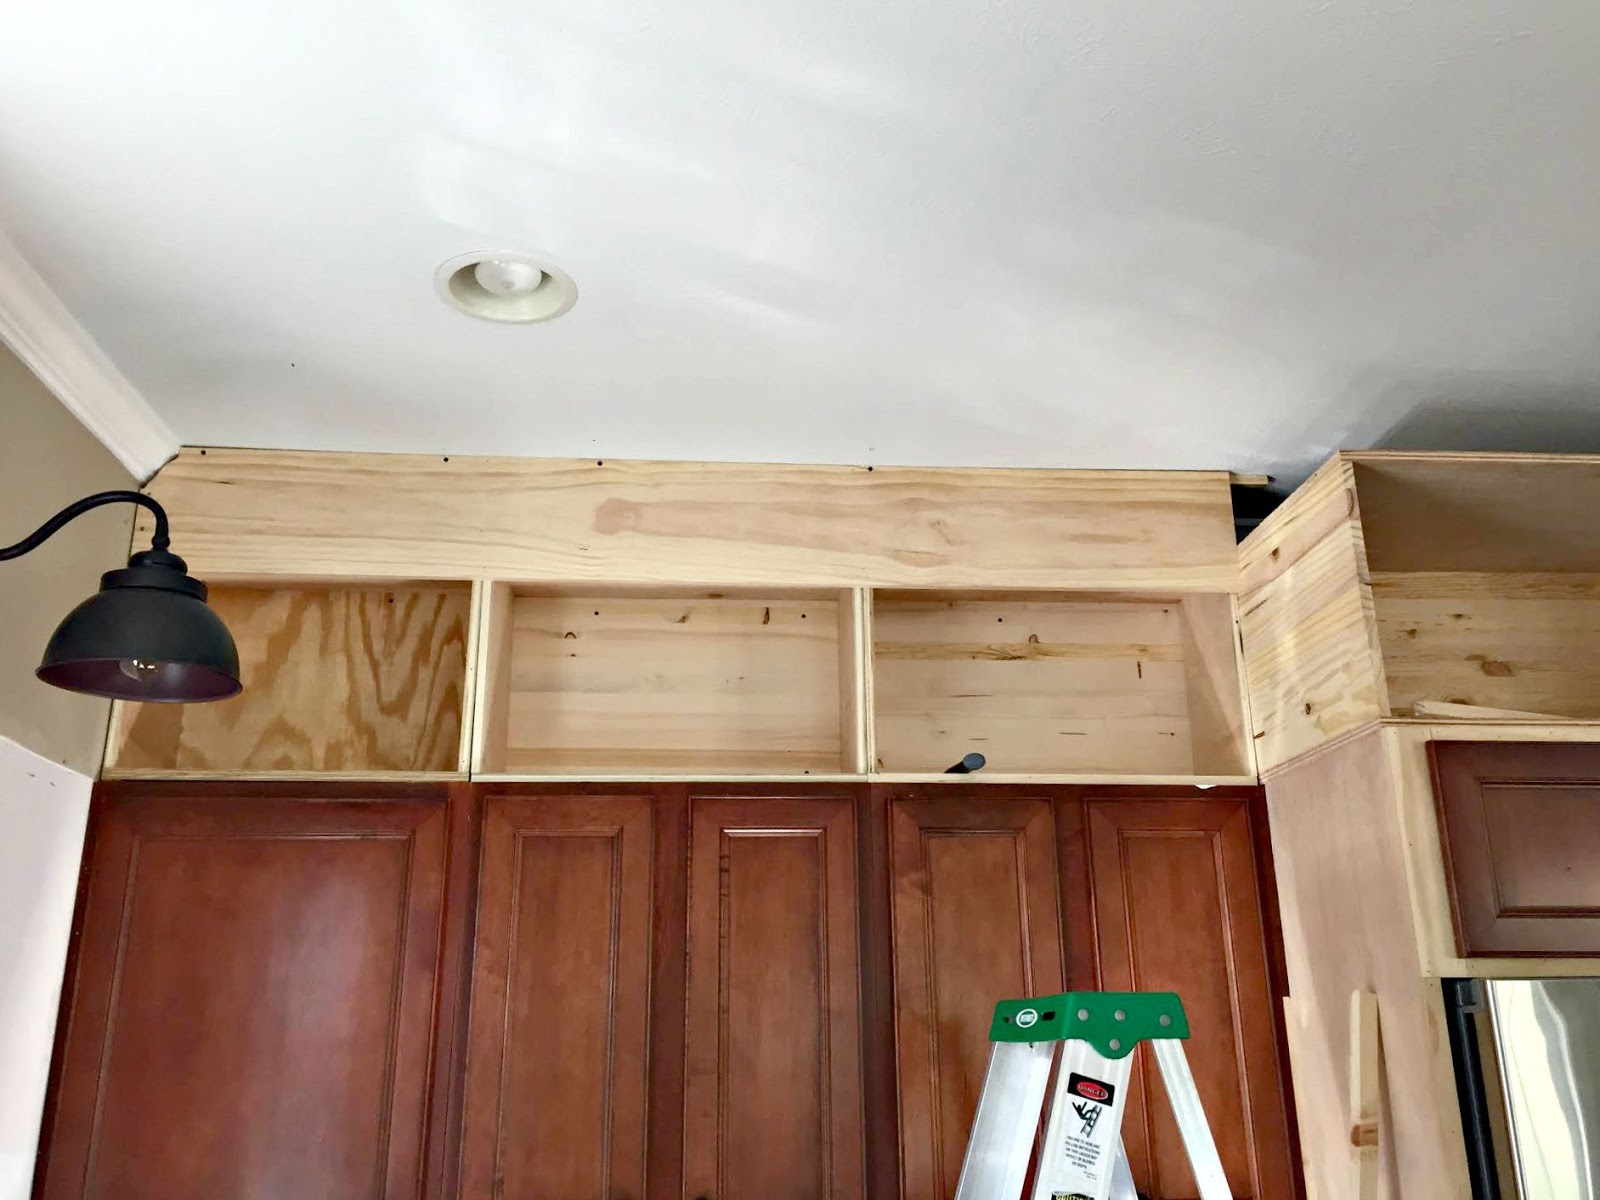 Building A Kitchen Cabinet Building Cabinets Up To The Ceiling From Thrifty Decor Chick